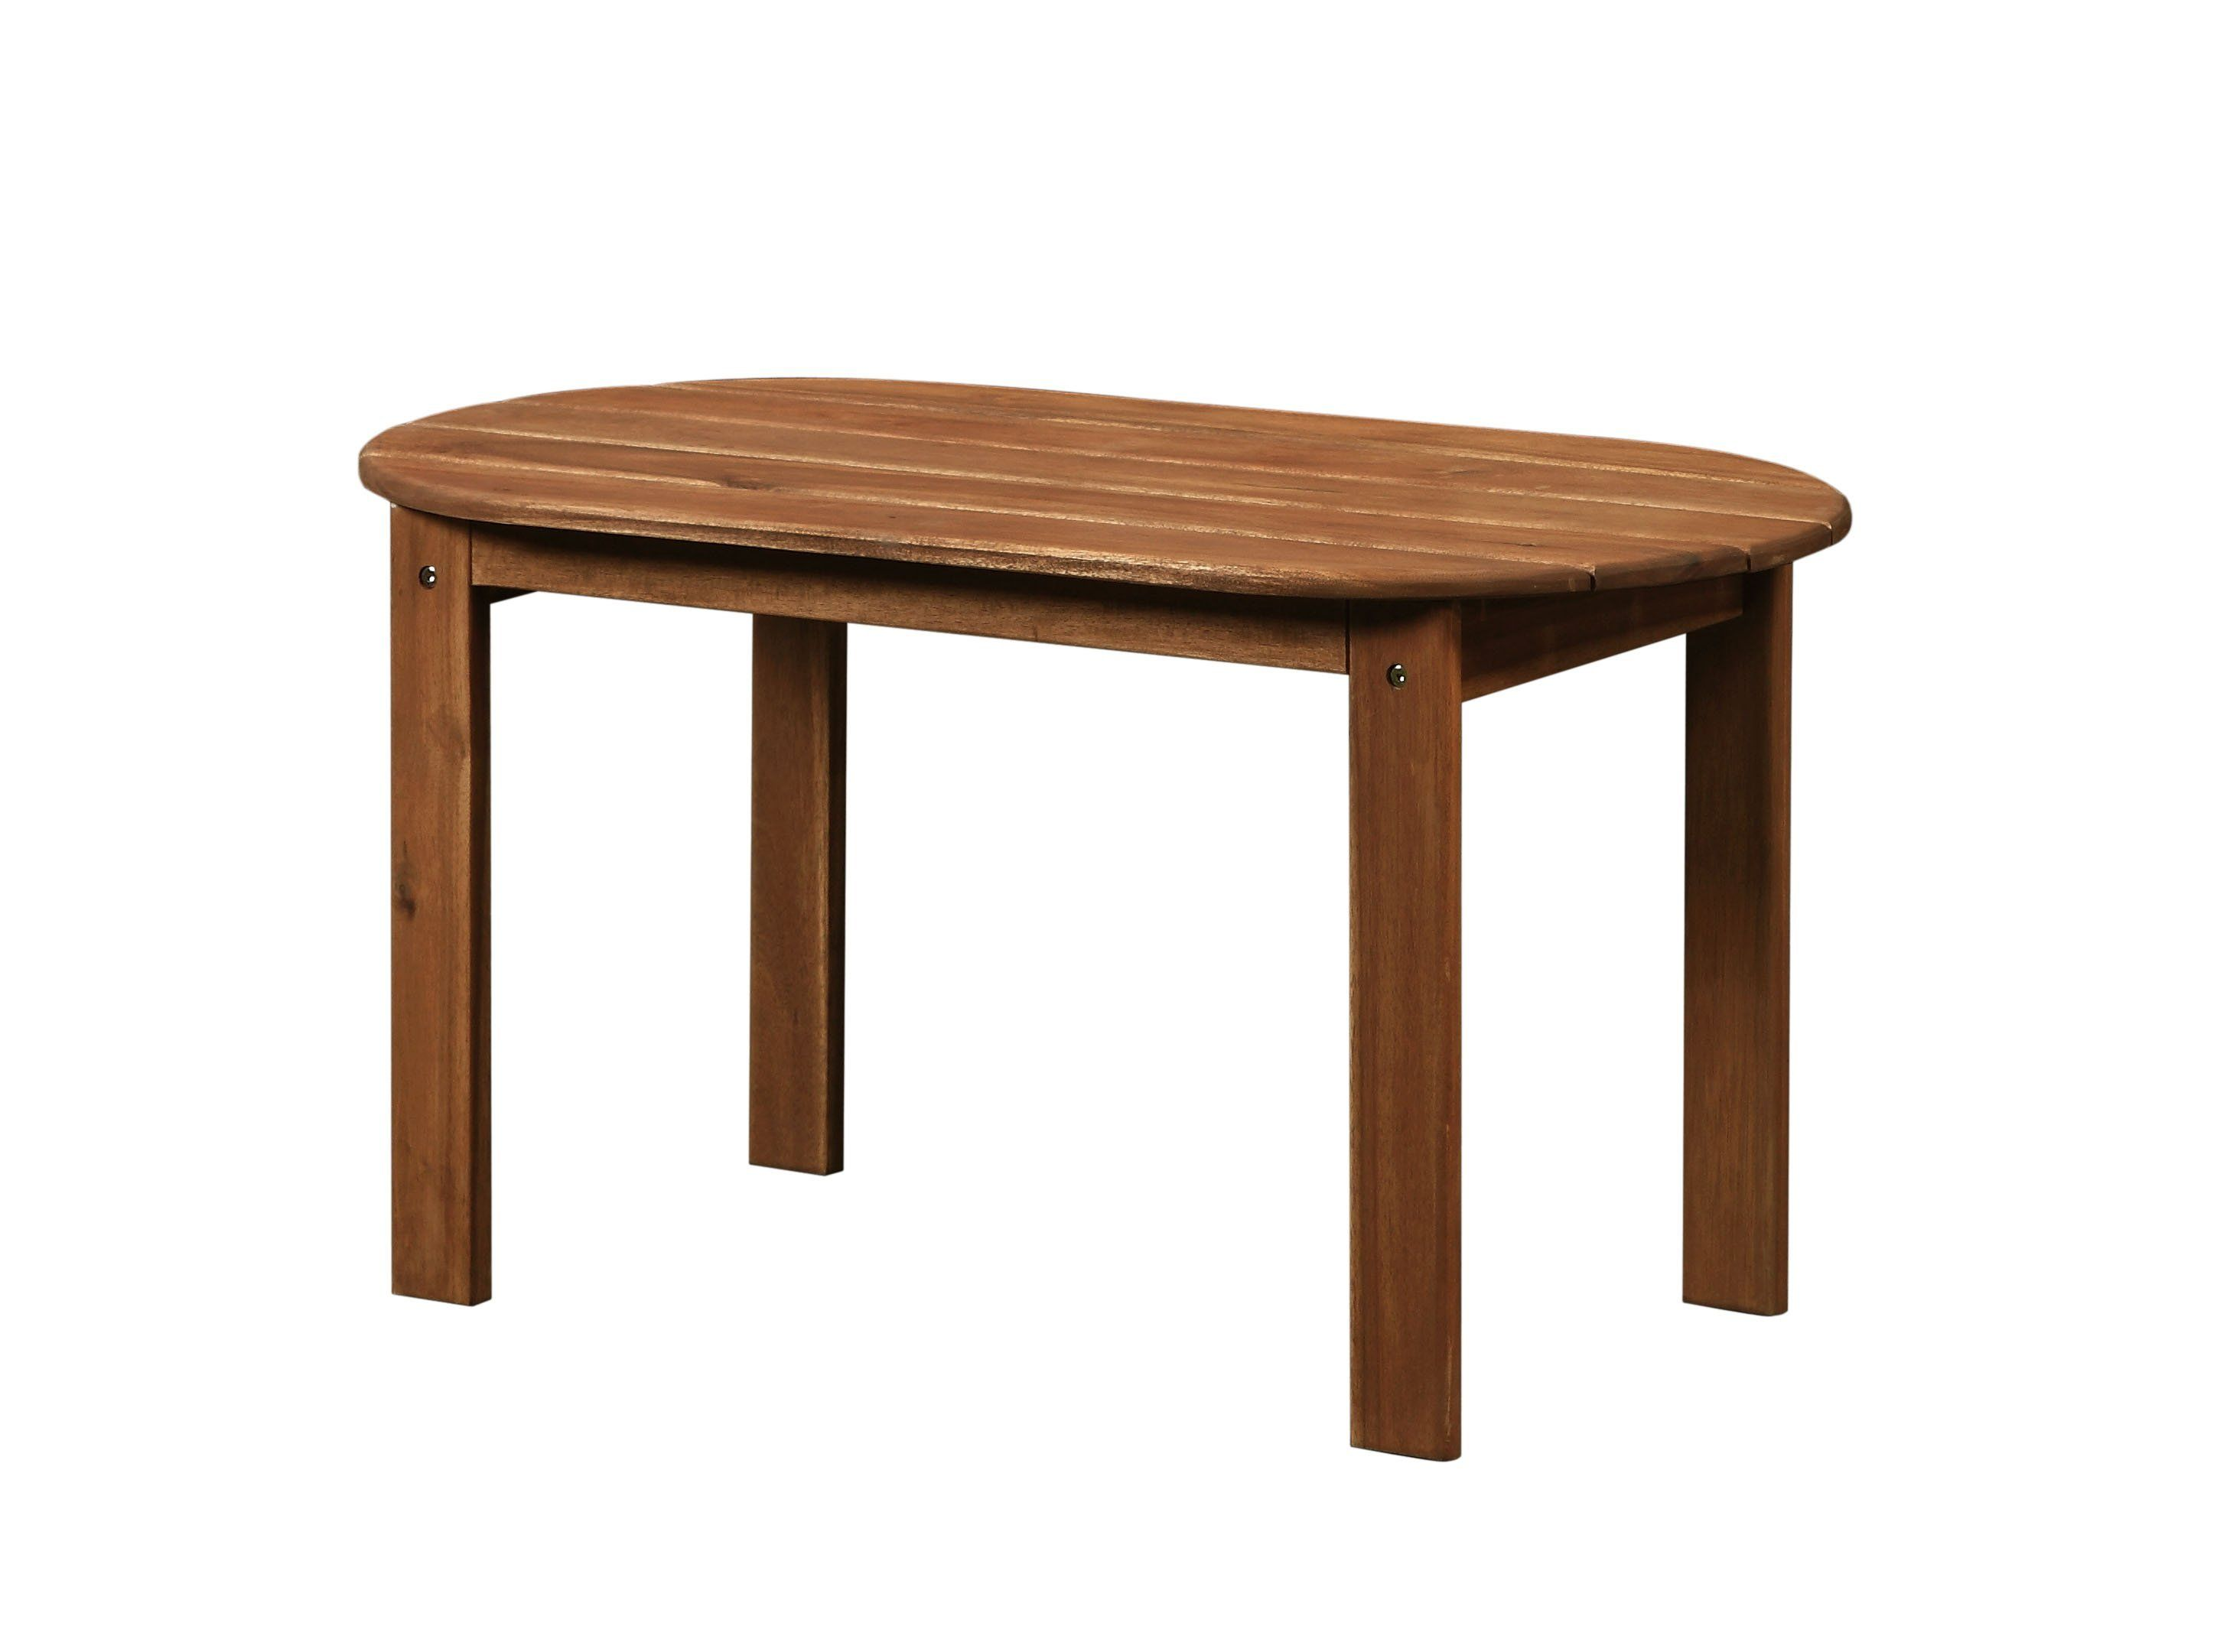 Adirondack Teak Finish Coffee Table Oval Coffee Tables Solid